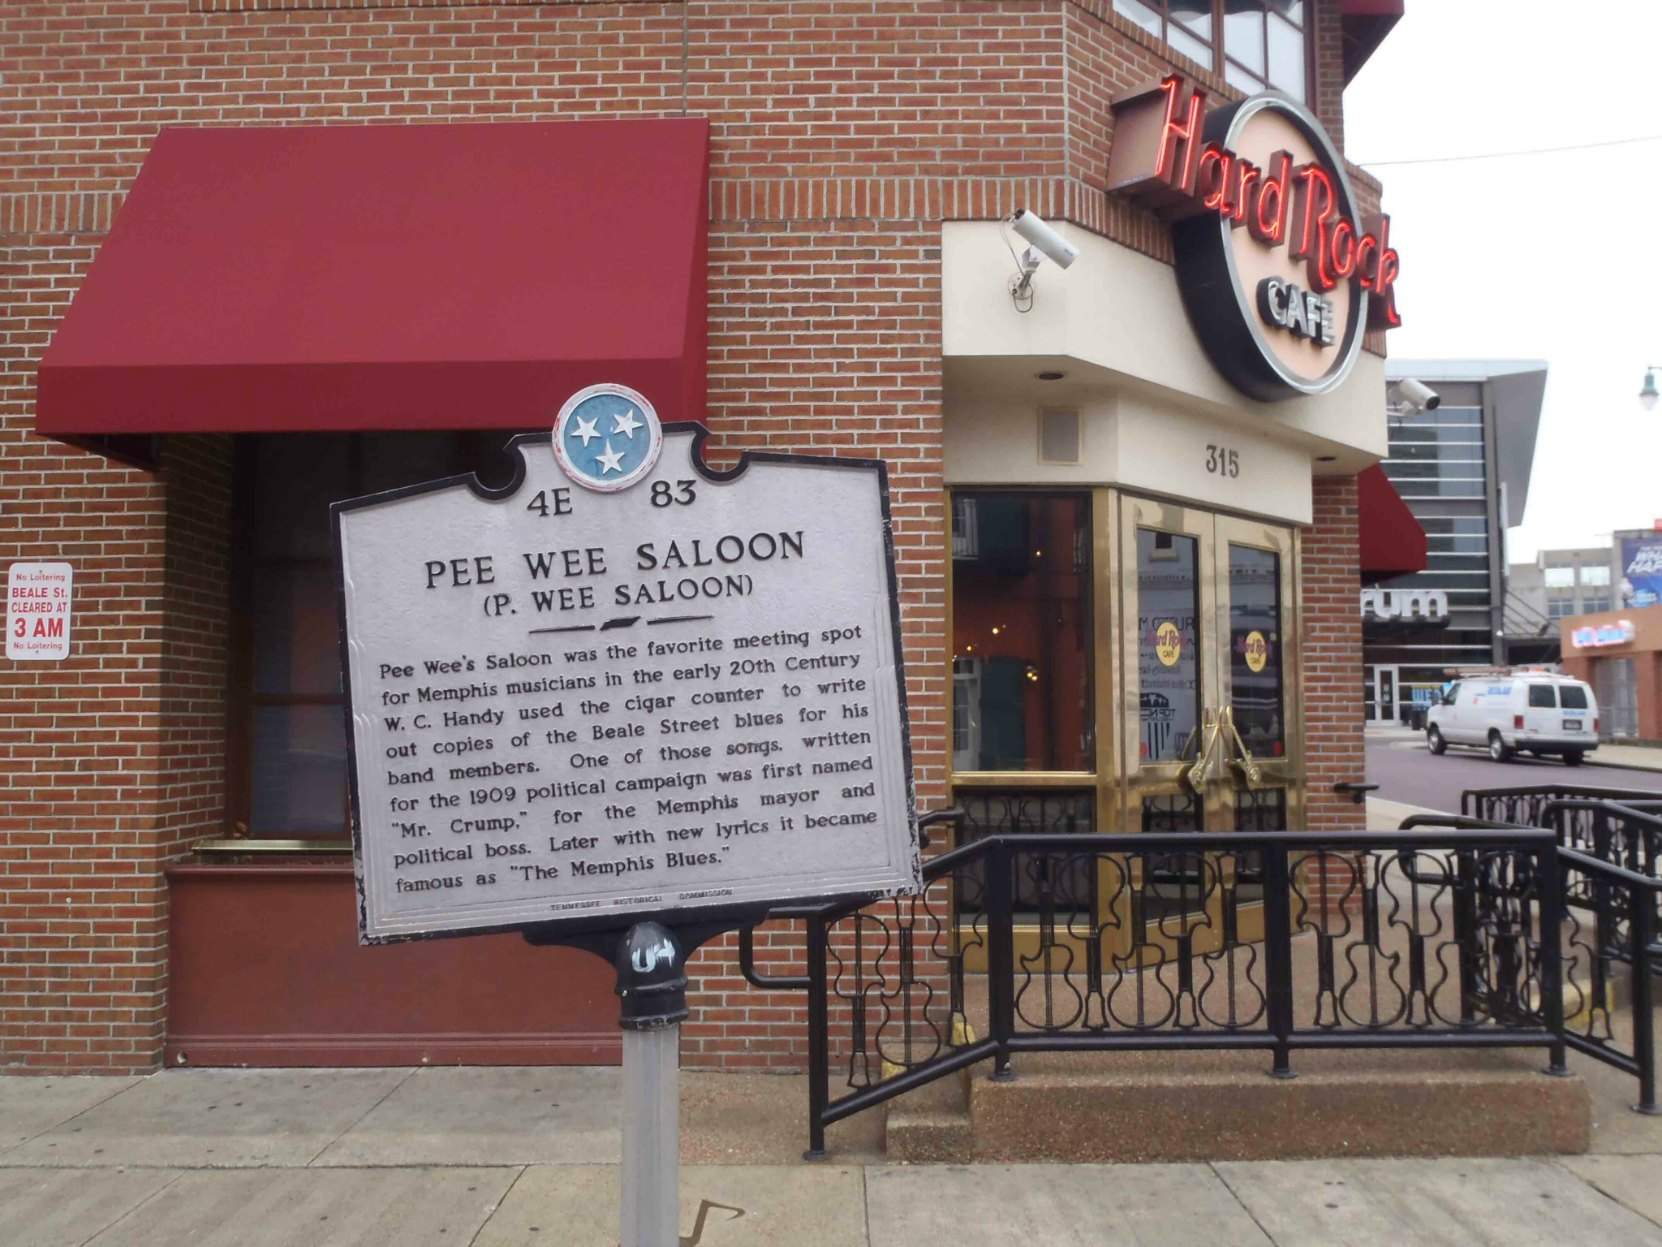 Tennessee Historical Commission marker for Pee Wee Saloon, outside the Hard Rock Cafe on Beale Street, Memphis